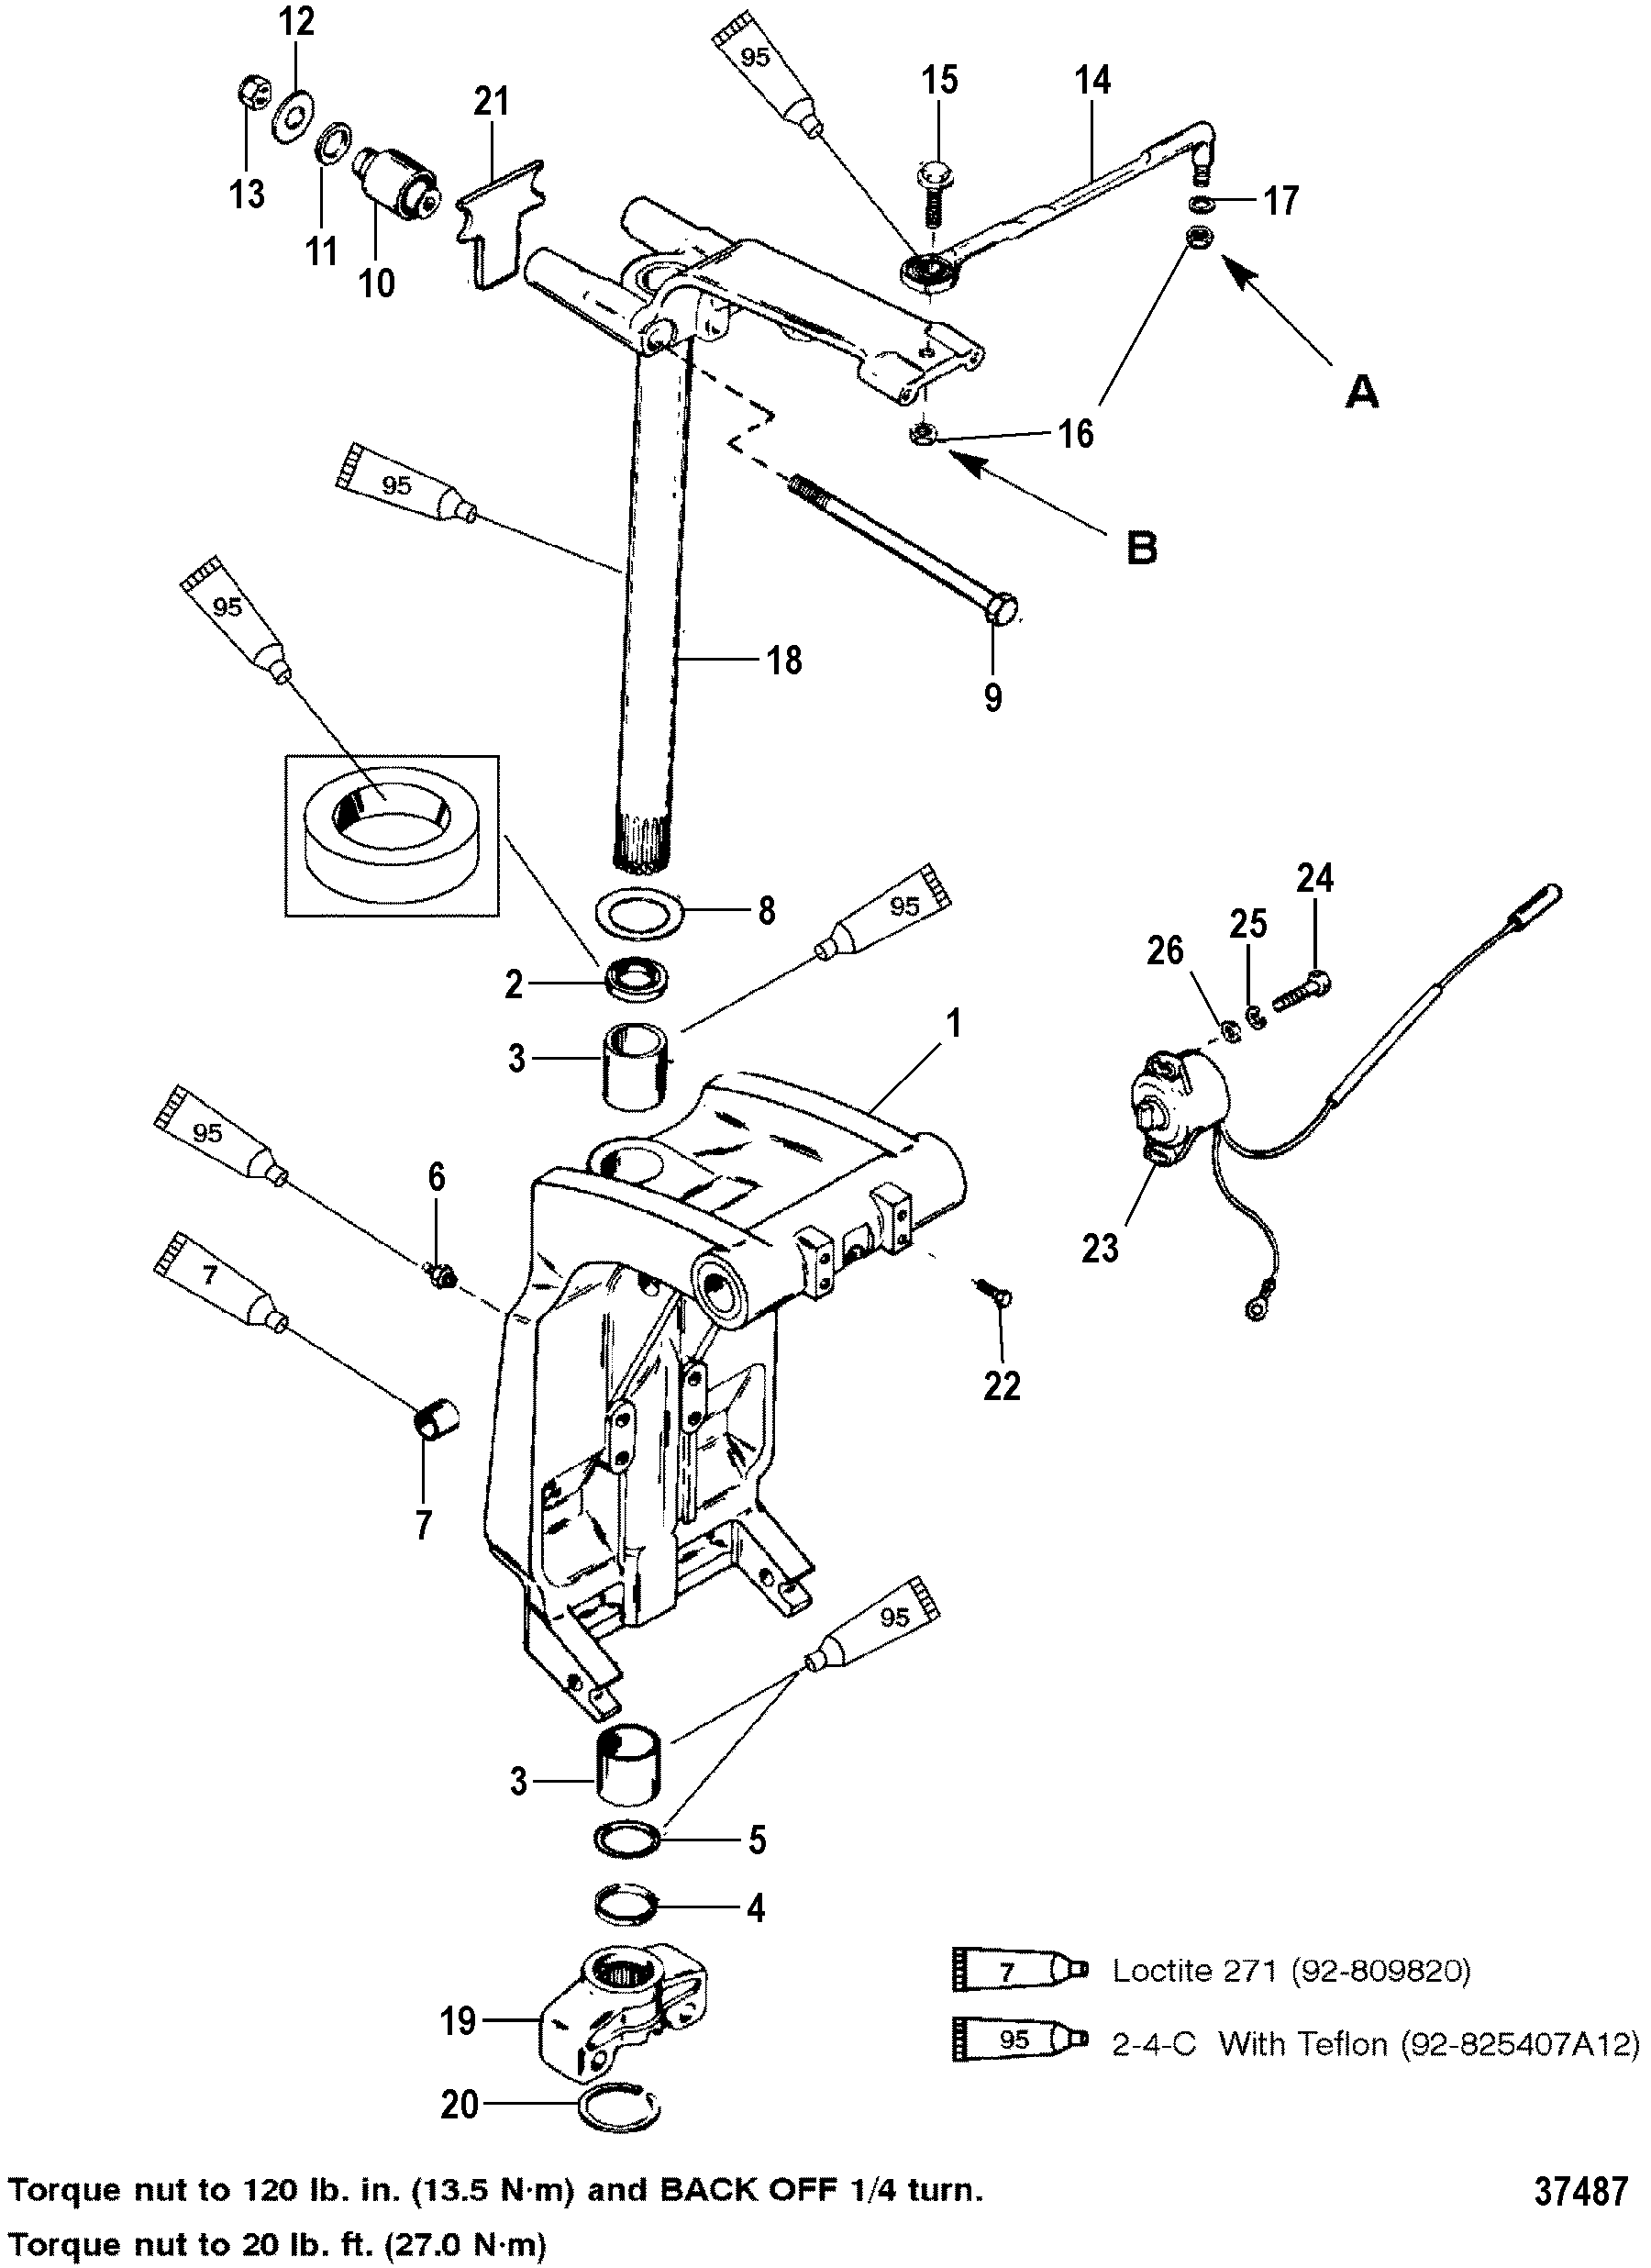 Swivel Bracket And Steering Arm For Mariner Mercury 150